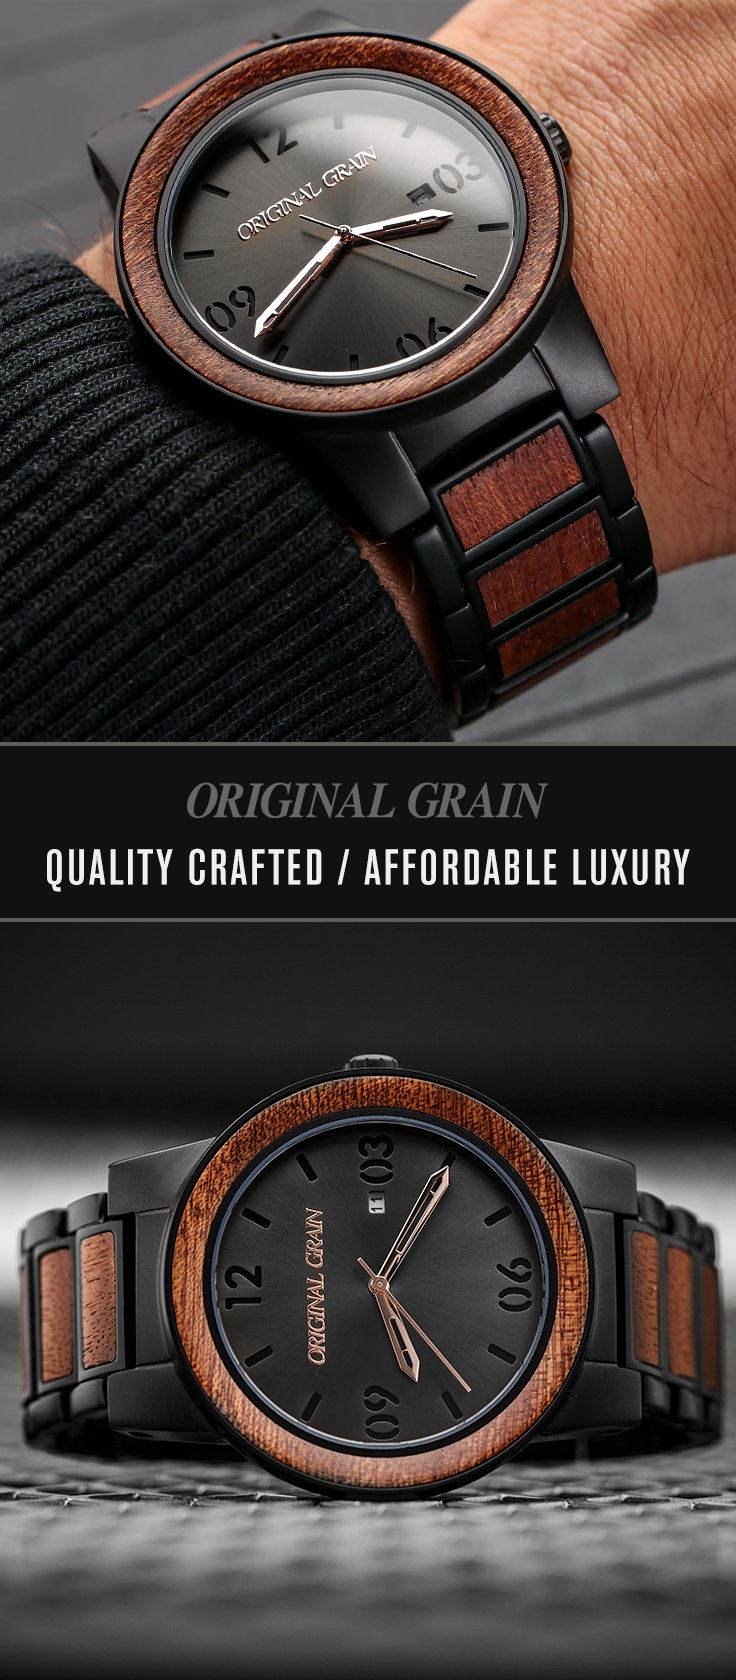 edc adding seems most at heart but seen carry like a plain best re minimalist and ve watches thinking affordable so you under in to about everyday around your looked mens watch it